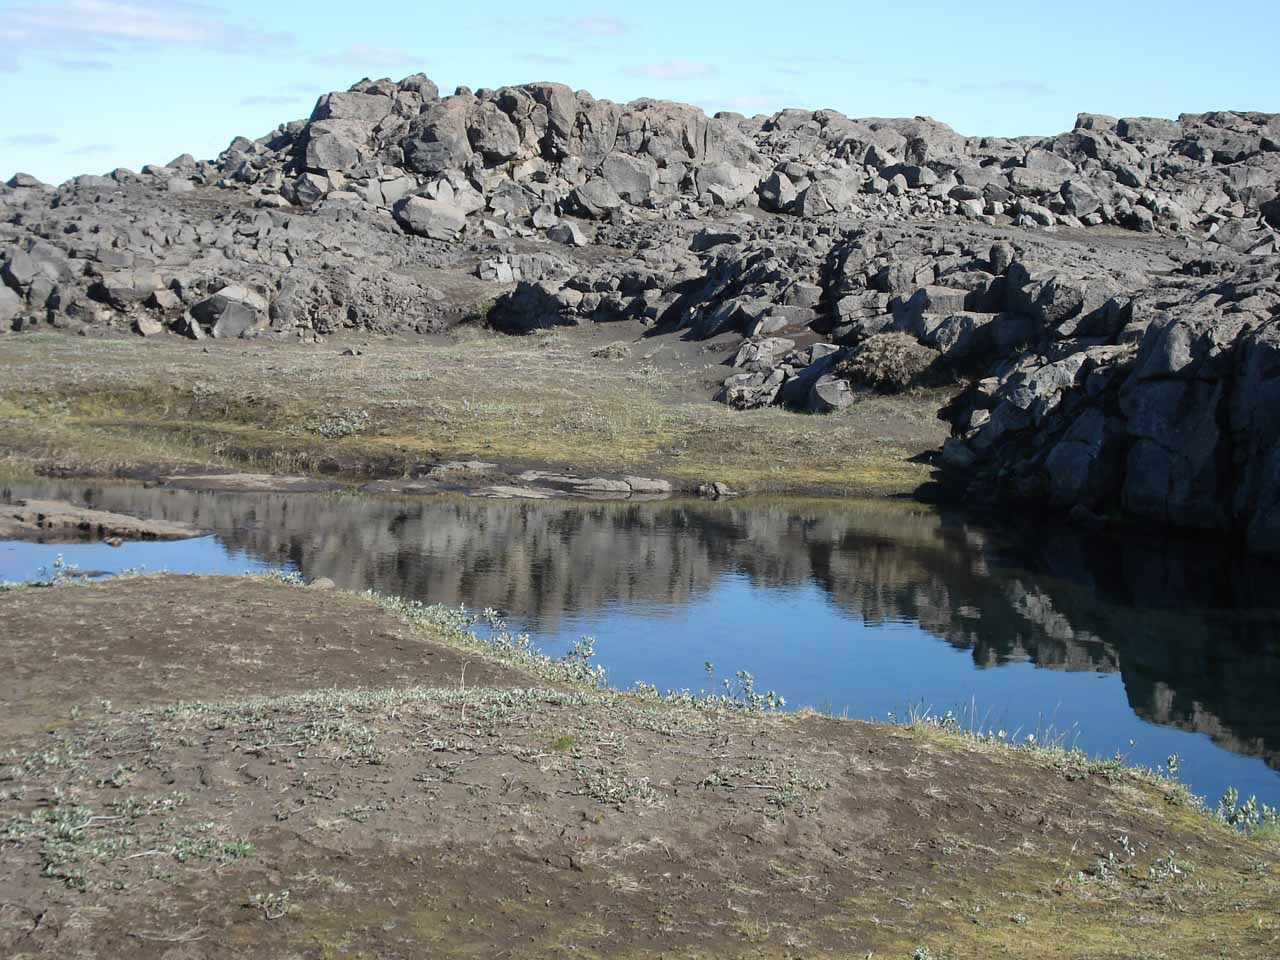 The rains from yesterday produced little reflective tarns like this one